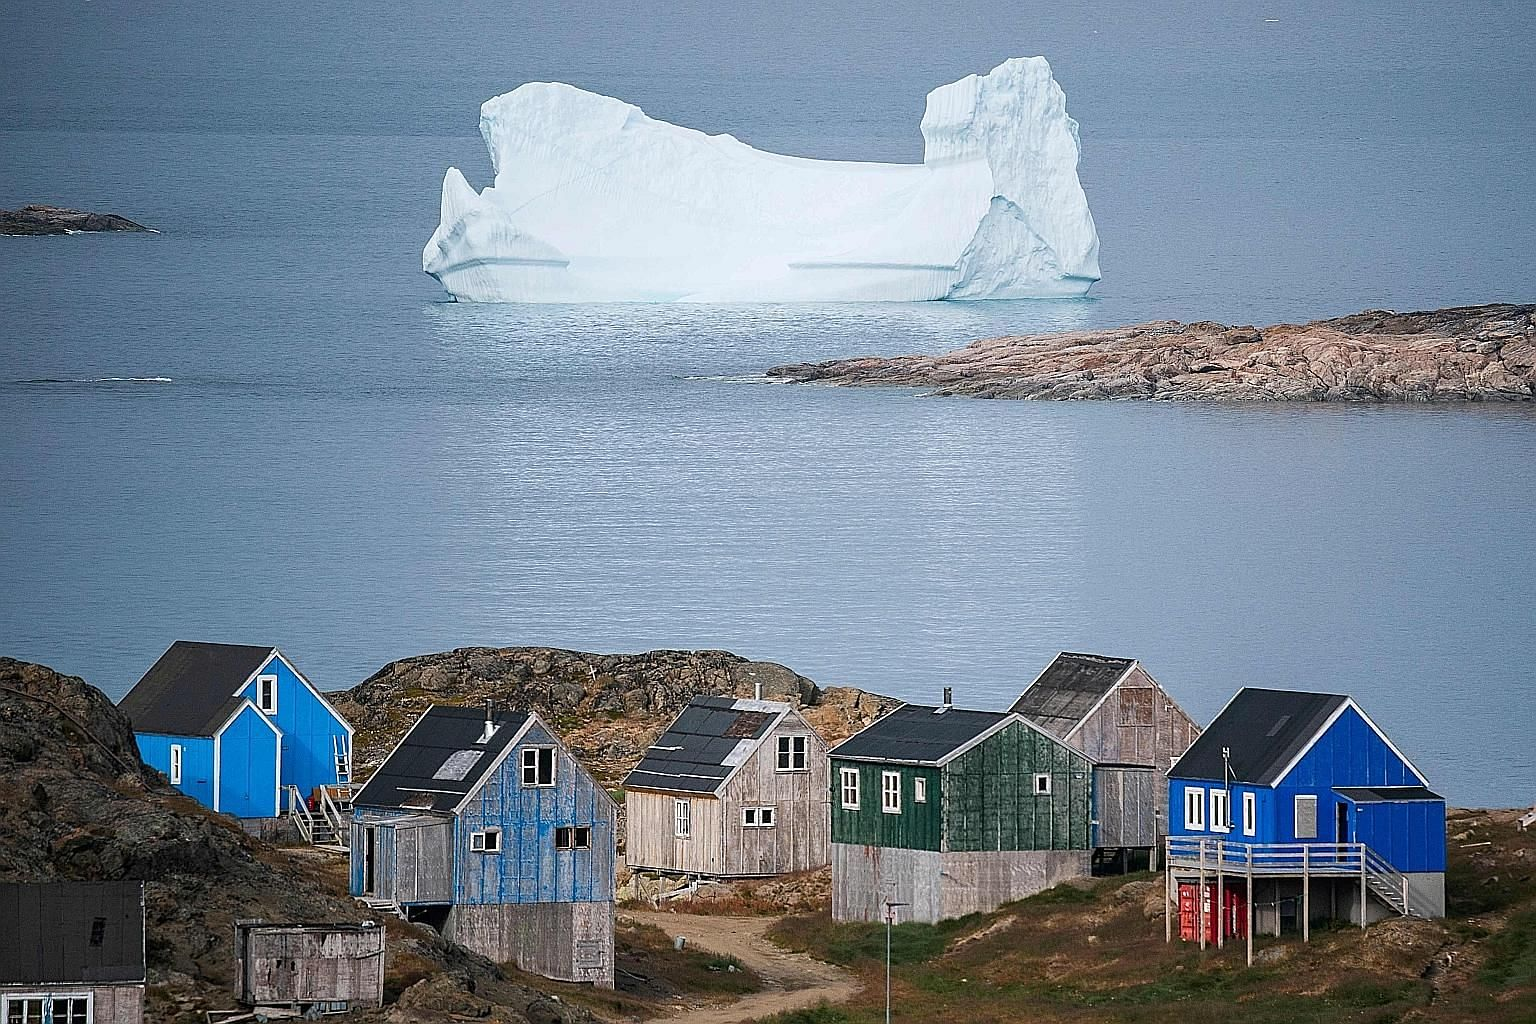 The town of Kulusuk in Greenland, a Danish self-governed territory. Referring to how US President Donald Trump recently scrapped a planned state visit to Denmark after being told that Greenland was not for sale, the writer says it is beyond the absur